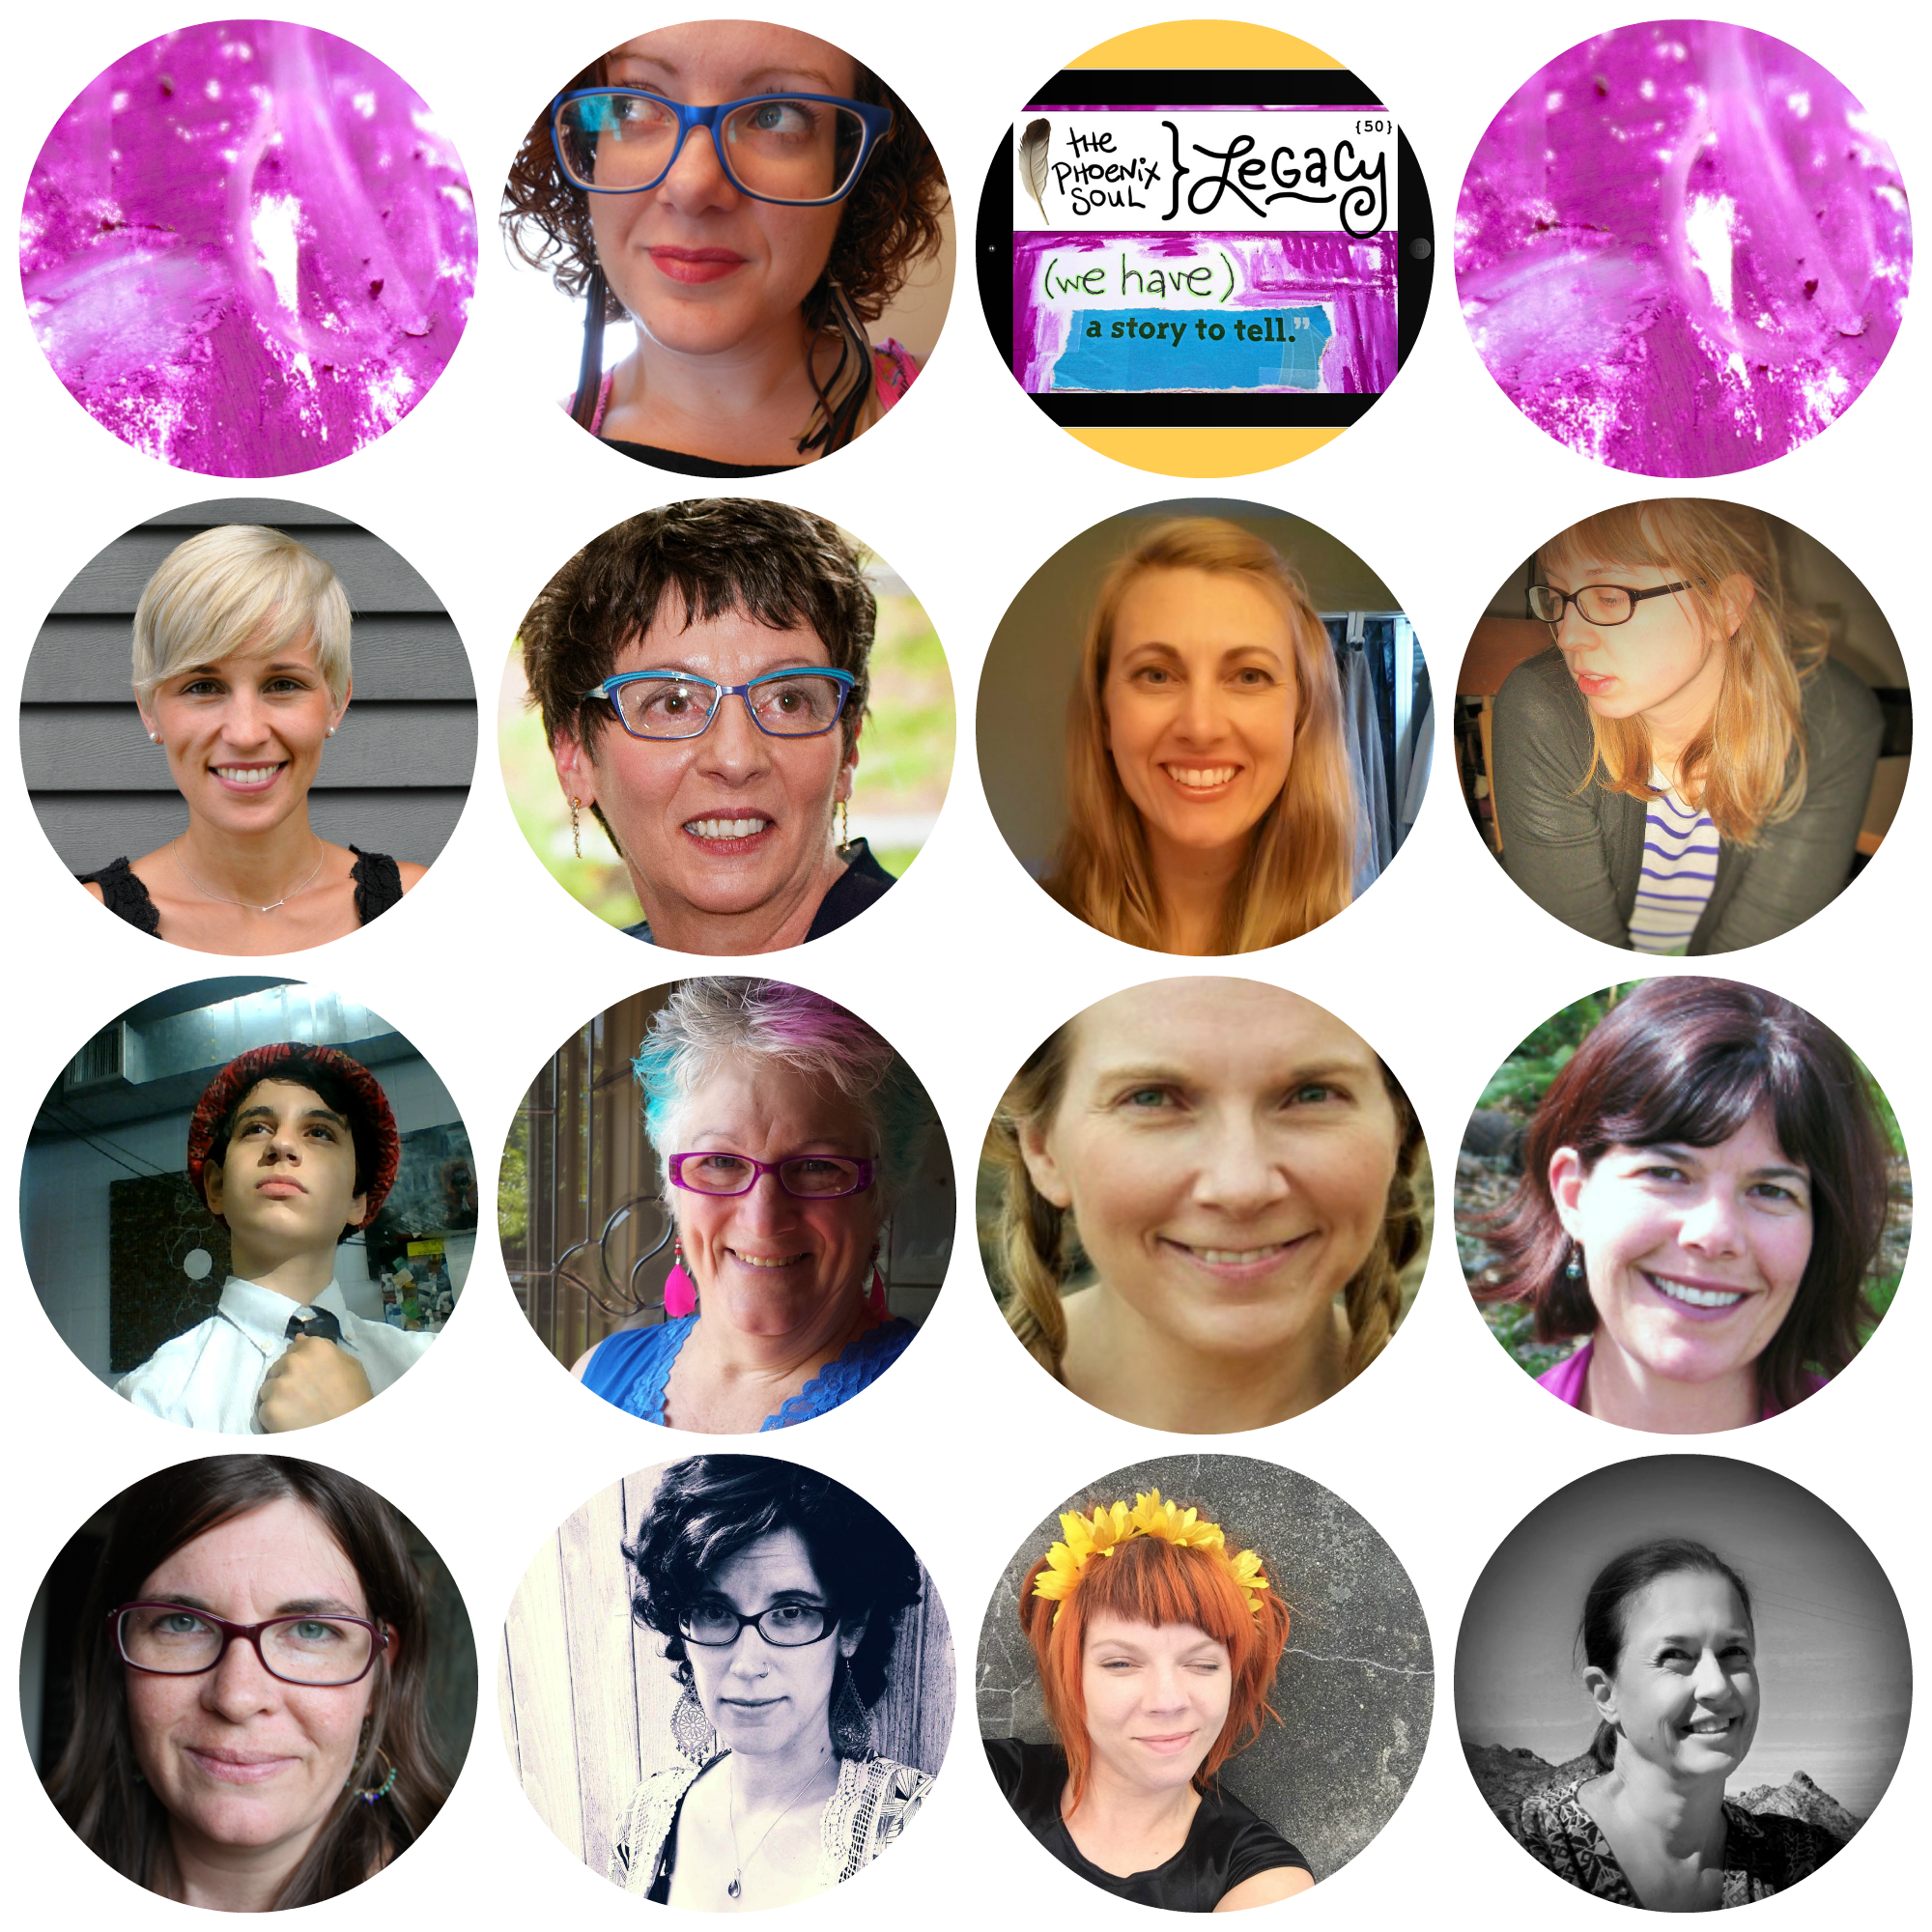 1. Amanda Fall. 2. Noelle Juday, Janet Reed, Katherine McCormick, Hannah Marshall. 3. Daniel Blokh, Maureen Helms Blake, De Jackson, Julia Fehrenbacher. 4. suzanne l. vinson, Beth Morey, Carissa Paige, Laurie Blackwell.